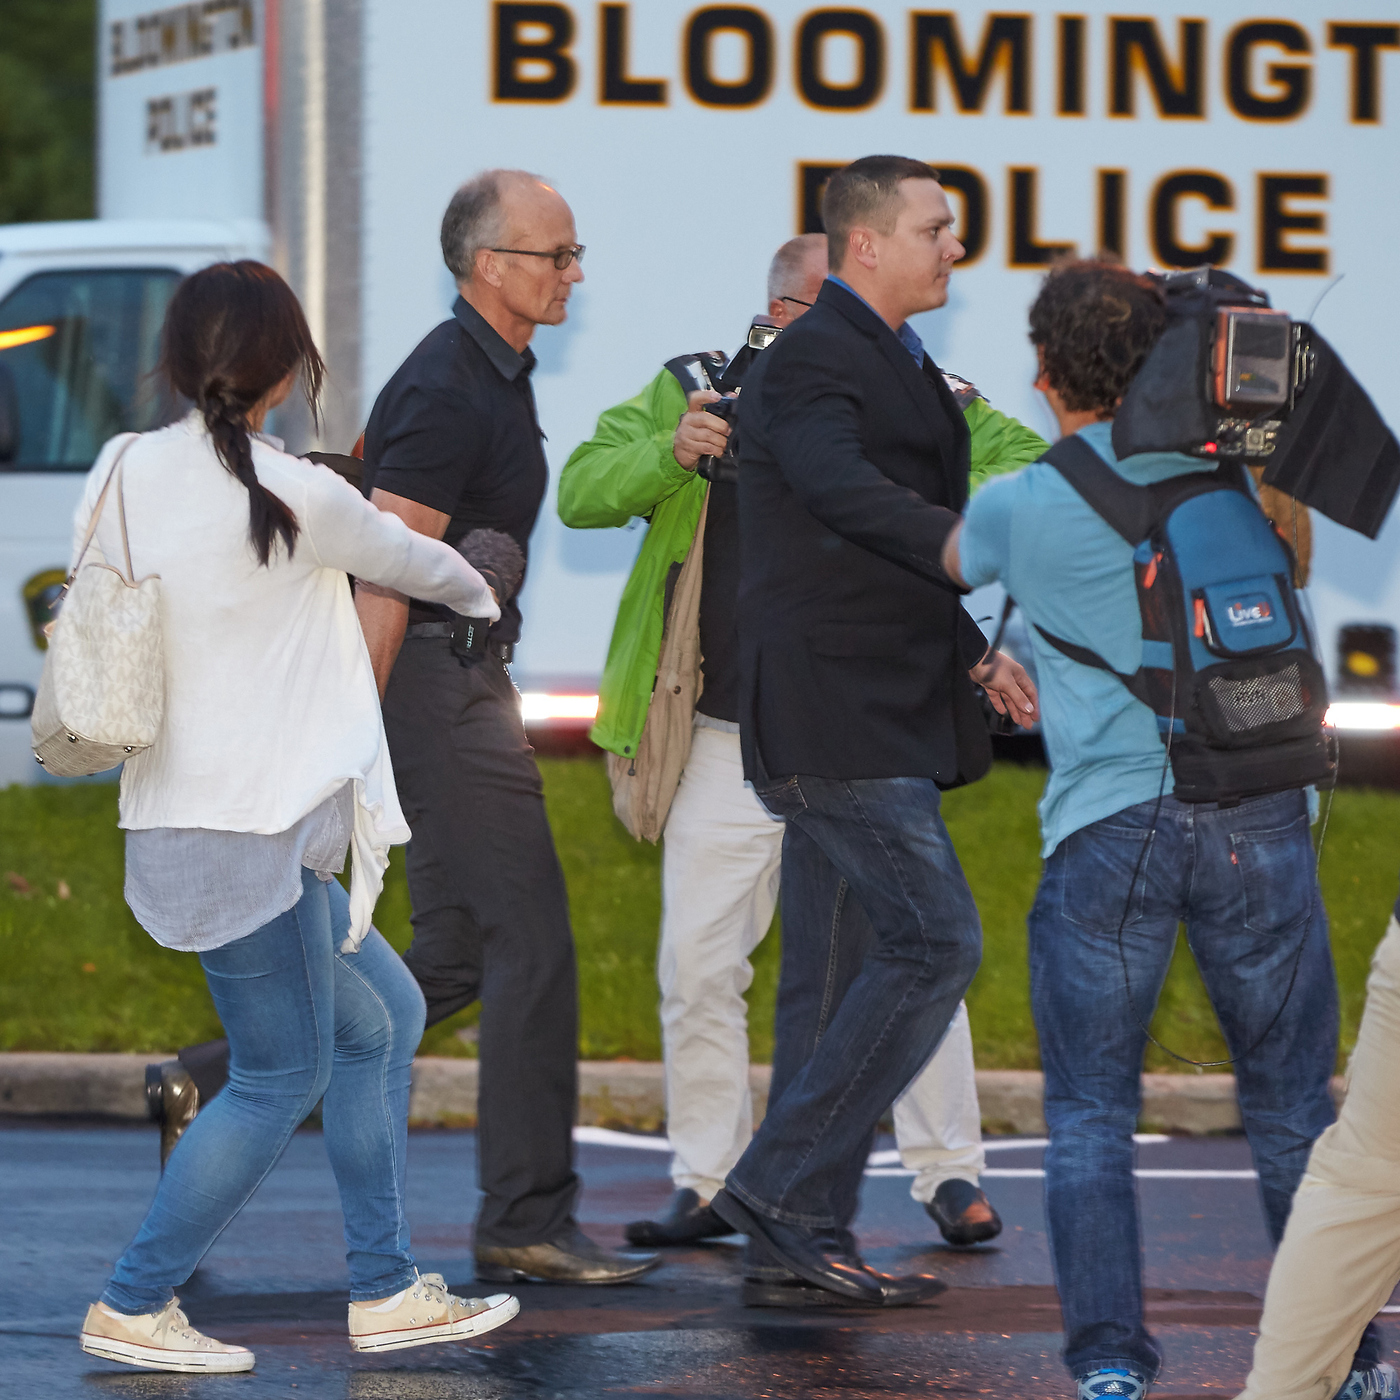 Dentist Walter Palmer, left, in short sleeves, walks into his clinic with private security and members of the media last month in Bloomington, Minn. Protests over his killing of a lion in Zimbabwe had forced him to temporarily close his practice. Now officials say they will not prosecute him. Dentist Walter Palmer (left, in short sleeves) walks into his clinic with private security and members of the media last month in Bloomington, Minn. Protests over his killing of a lion in Zimbabwe had forced him to temporarily close his practice. Now officials say they will not prosecute him.